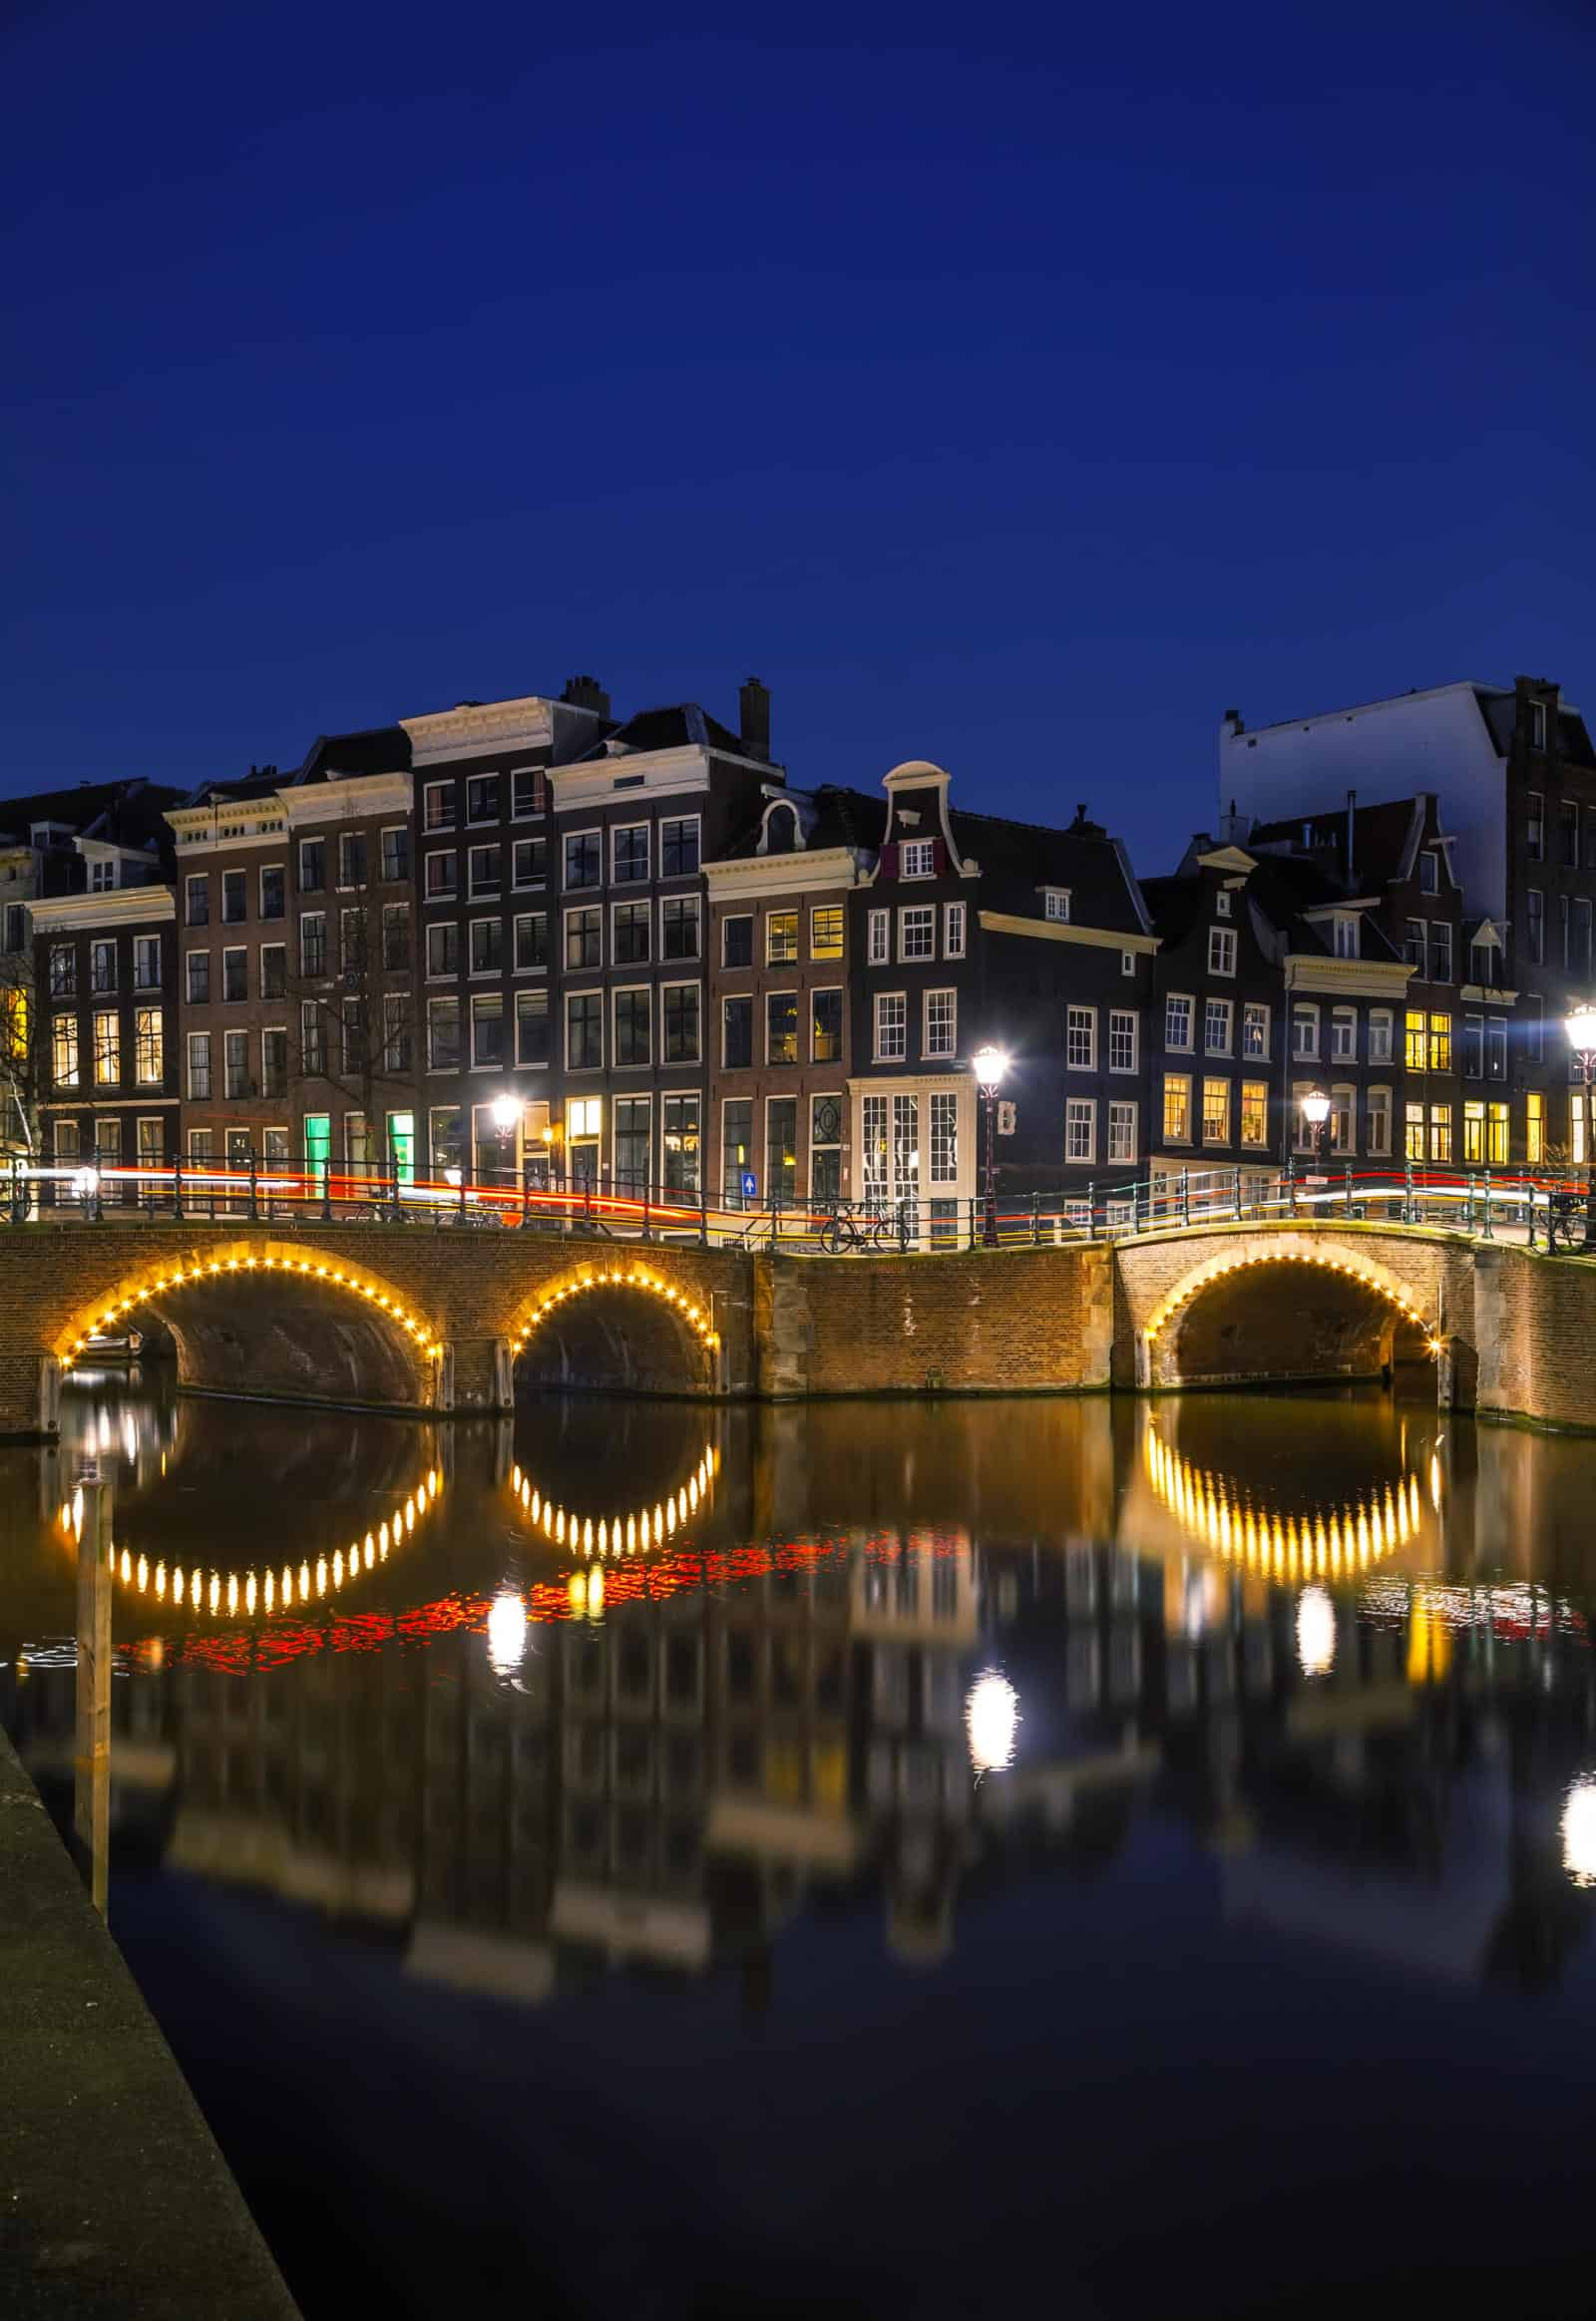 Best Things to do in Amsterdam at Night